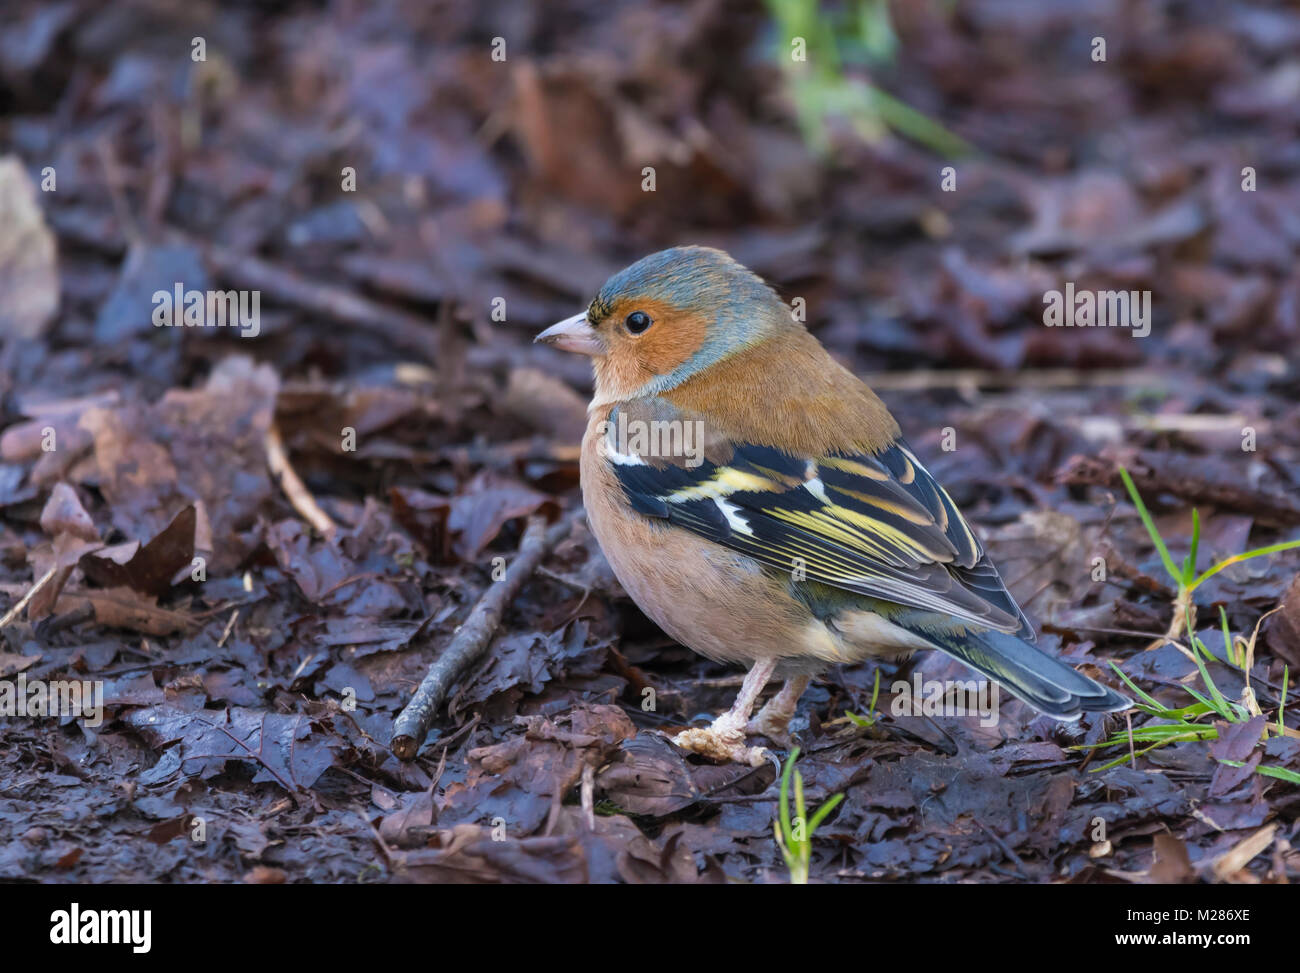 Adult male Common Chaffinch (Fringilla coelebs), a small bird in Winter foraging on the ground in West Sussex, England, - Stock Image